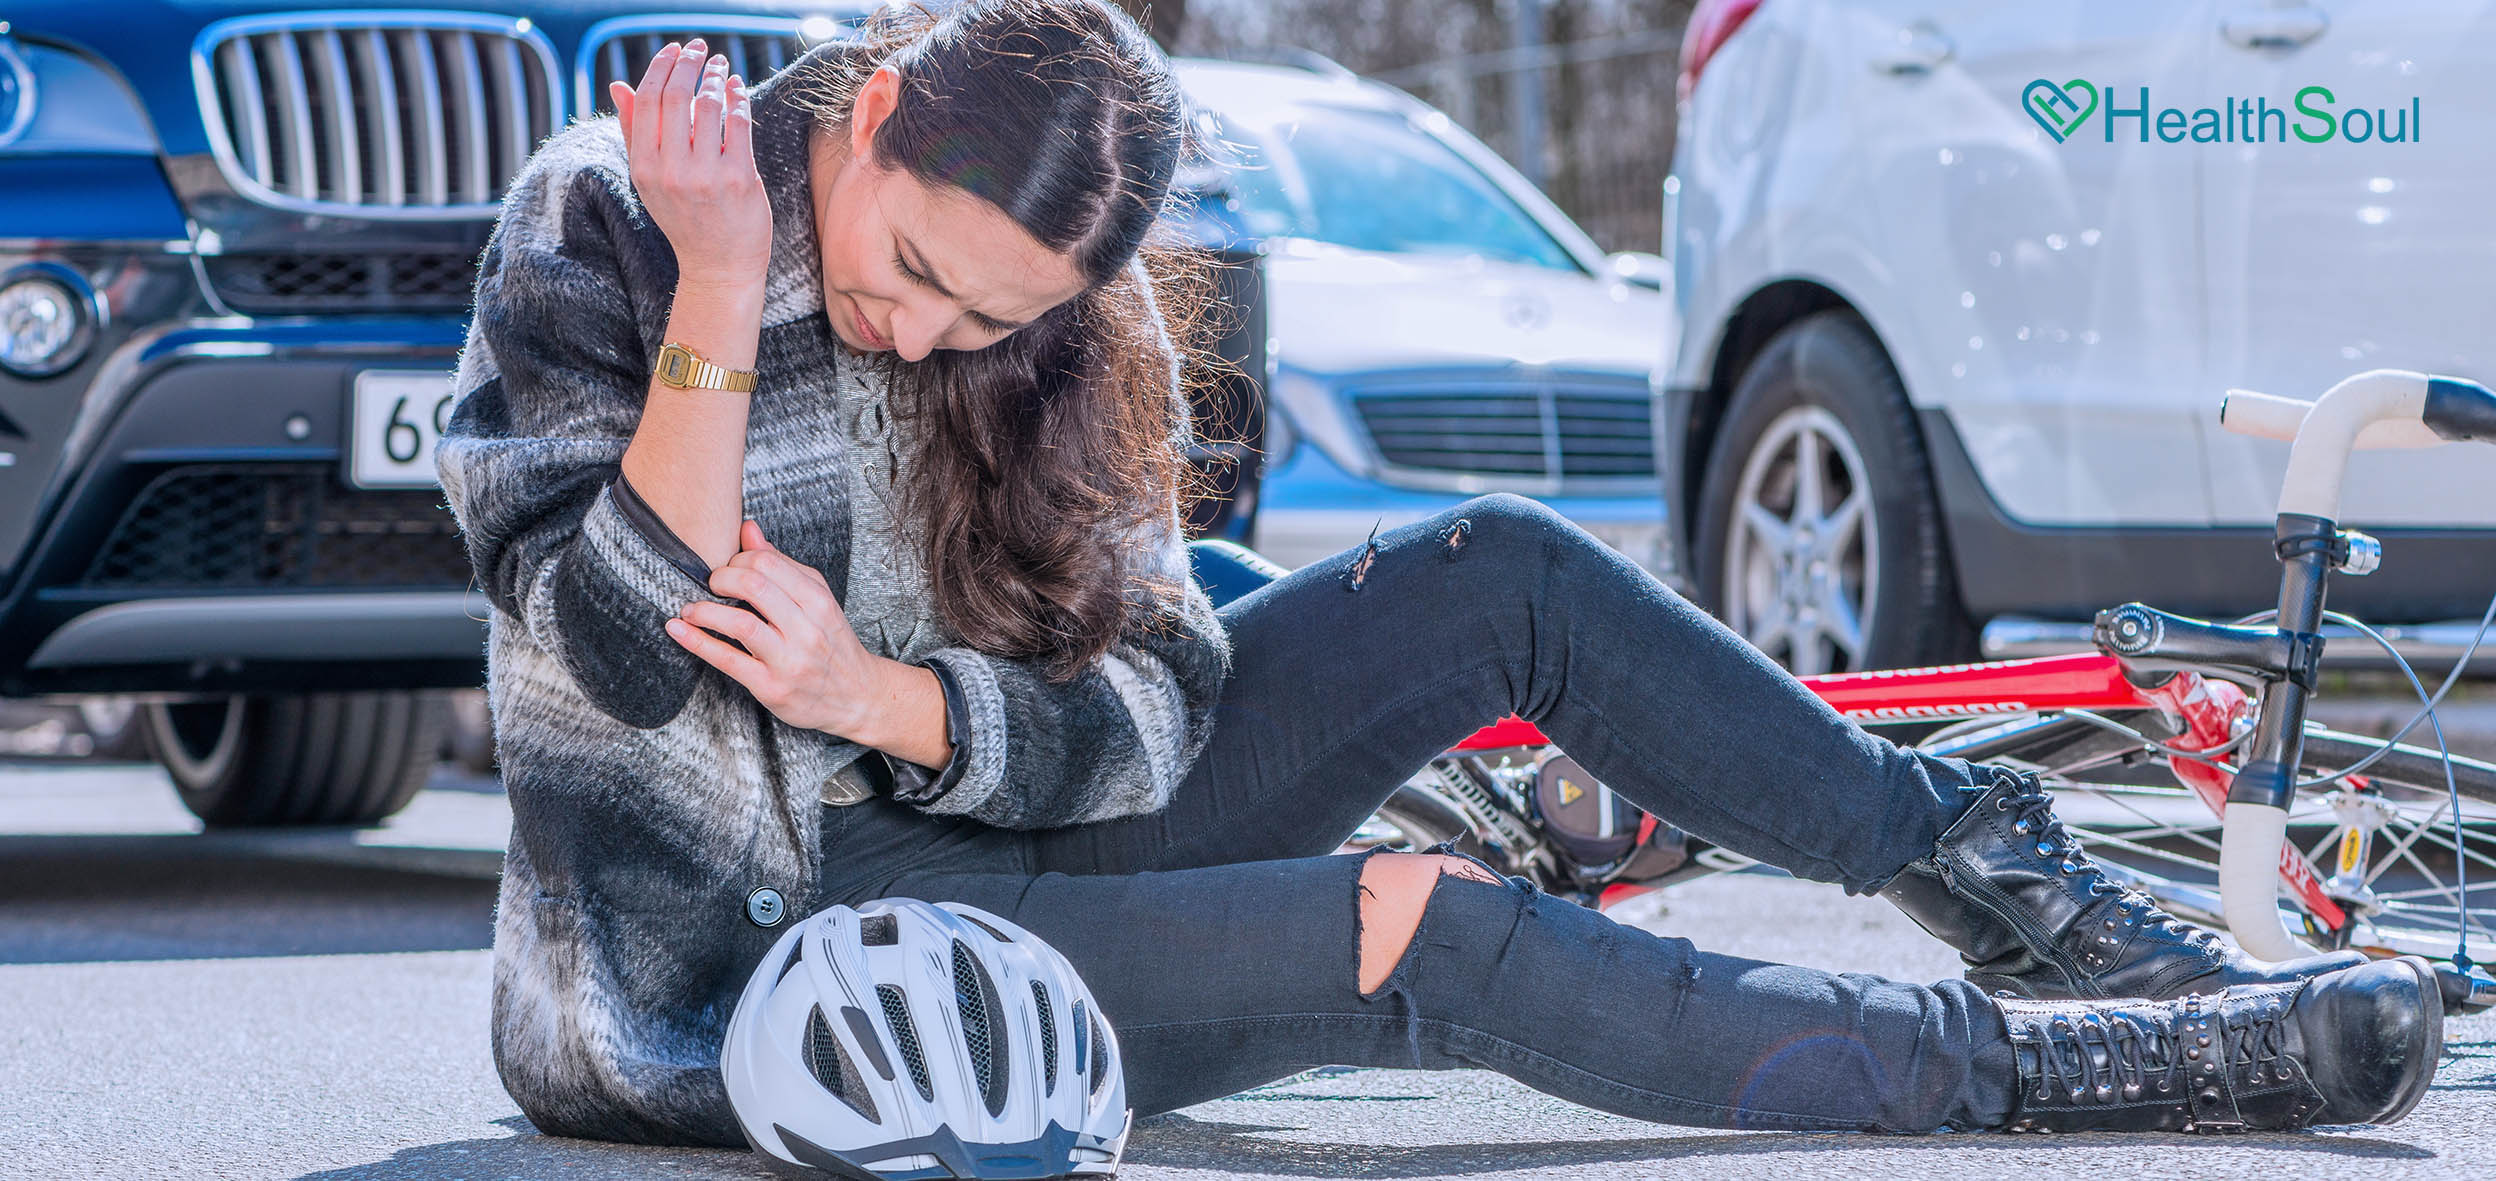 Hurt In A Moped Accident? Here's What You Should Immediately Do | HealthSoul